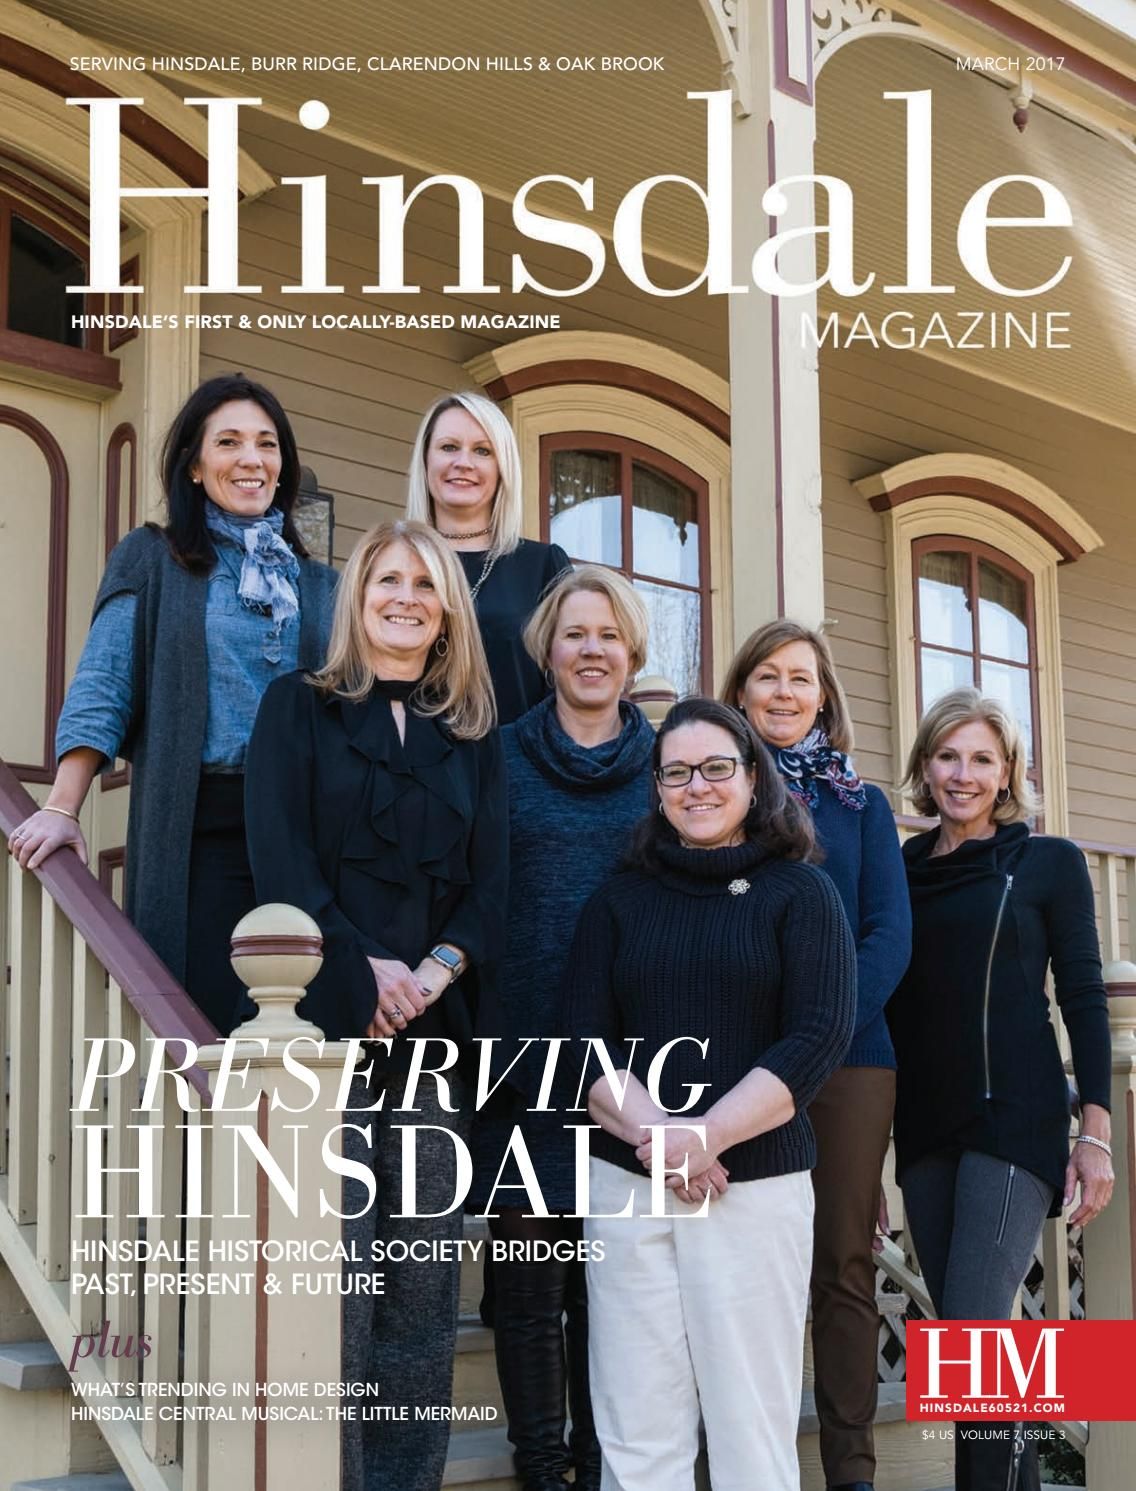 Hinsdale Magazine March 2017 By Www Hinsdale60521 Com Issuu